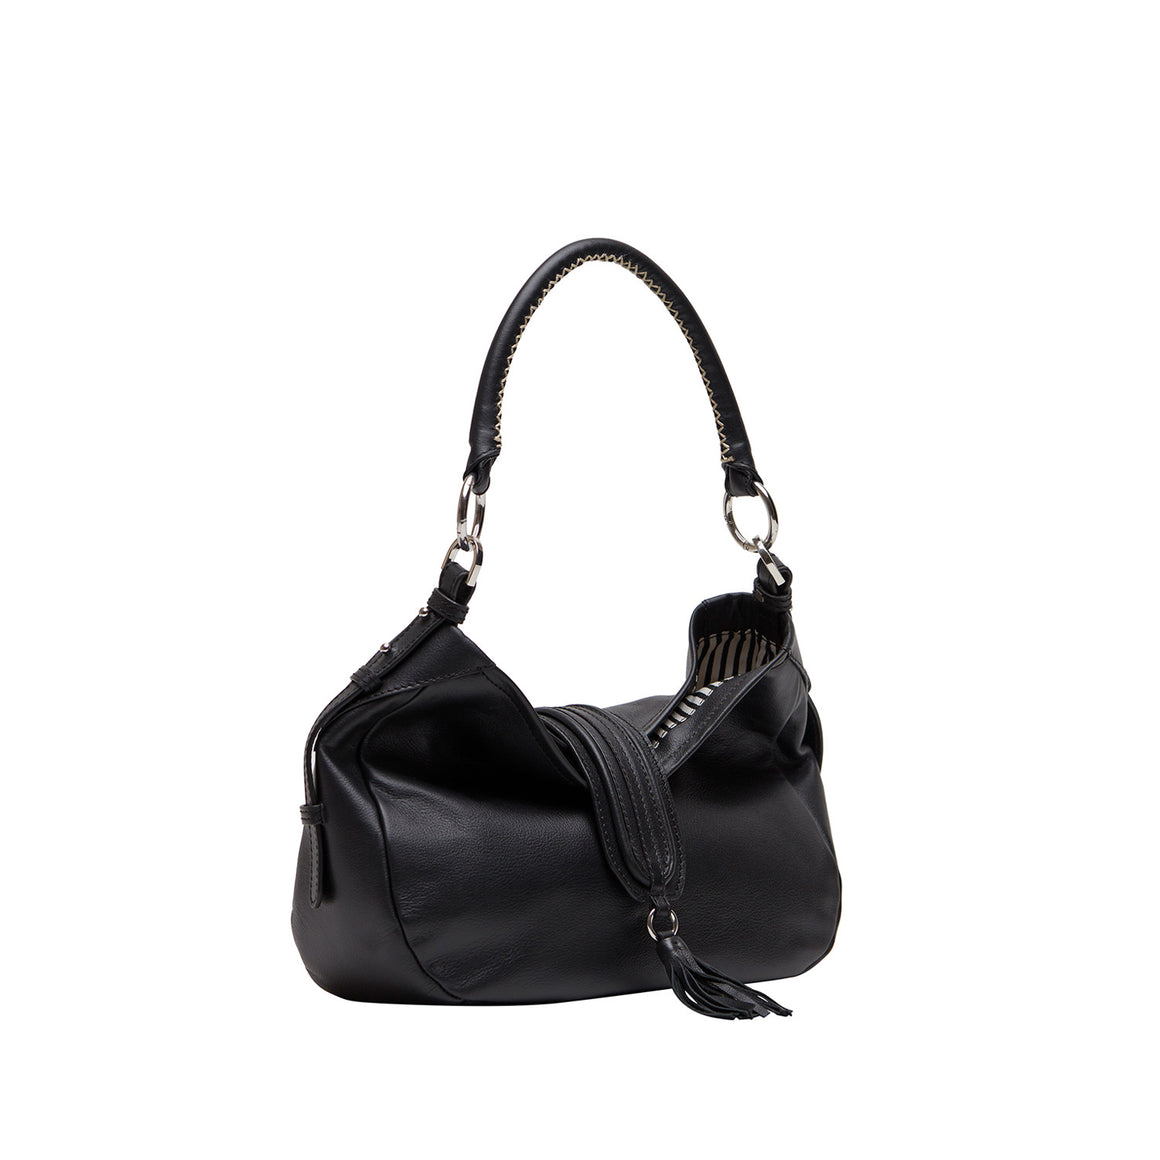 SB 0004 - TOHL BRIGITTE WOMEN'S SHOULDER BAG - CHARCOAL BLACK